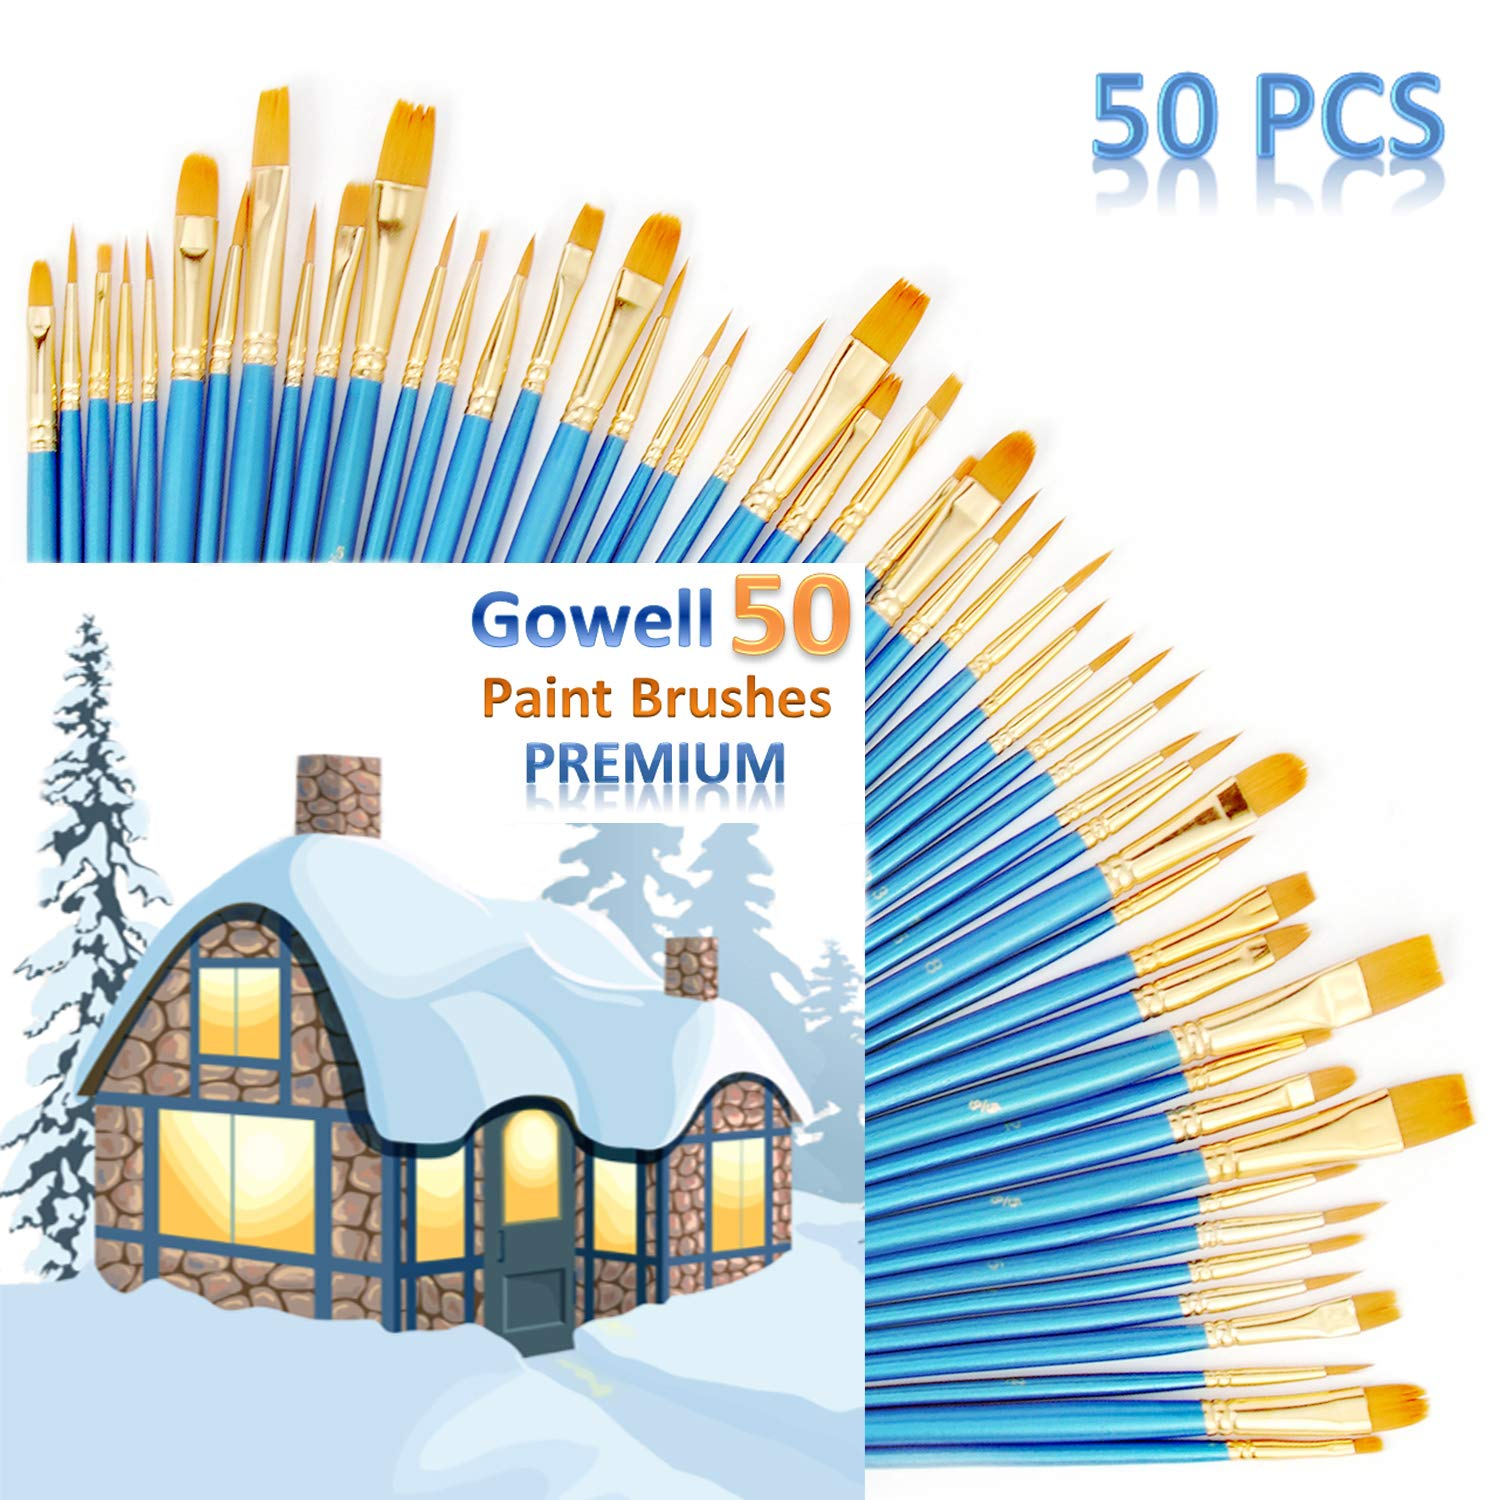 Acrylic Paint Brushes, Craft Paint Brushes, Artist Paint Brushes for All Purpose Oil Watercolor, Painting Artist Professional Kits (5Packs/50pcs) by Gowell